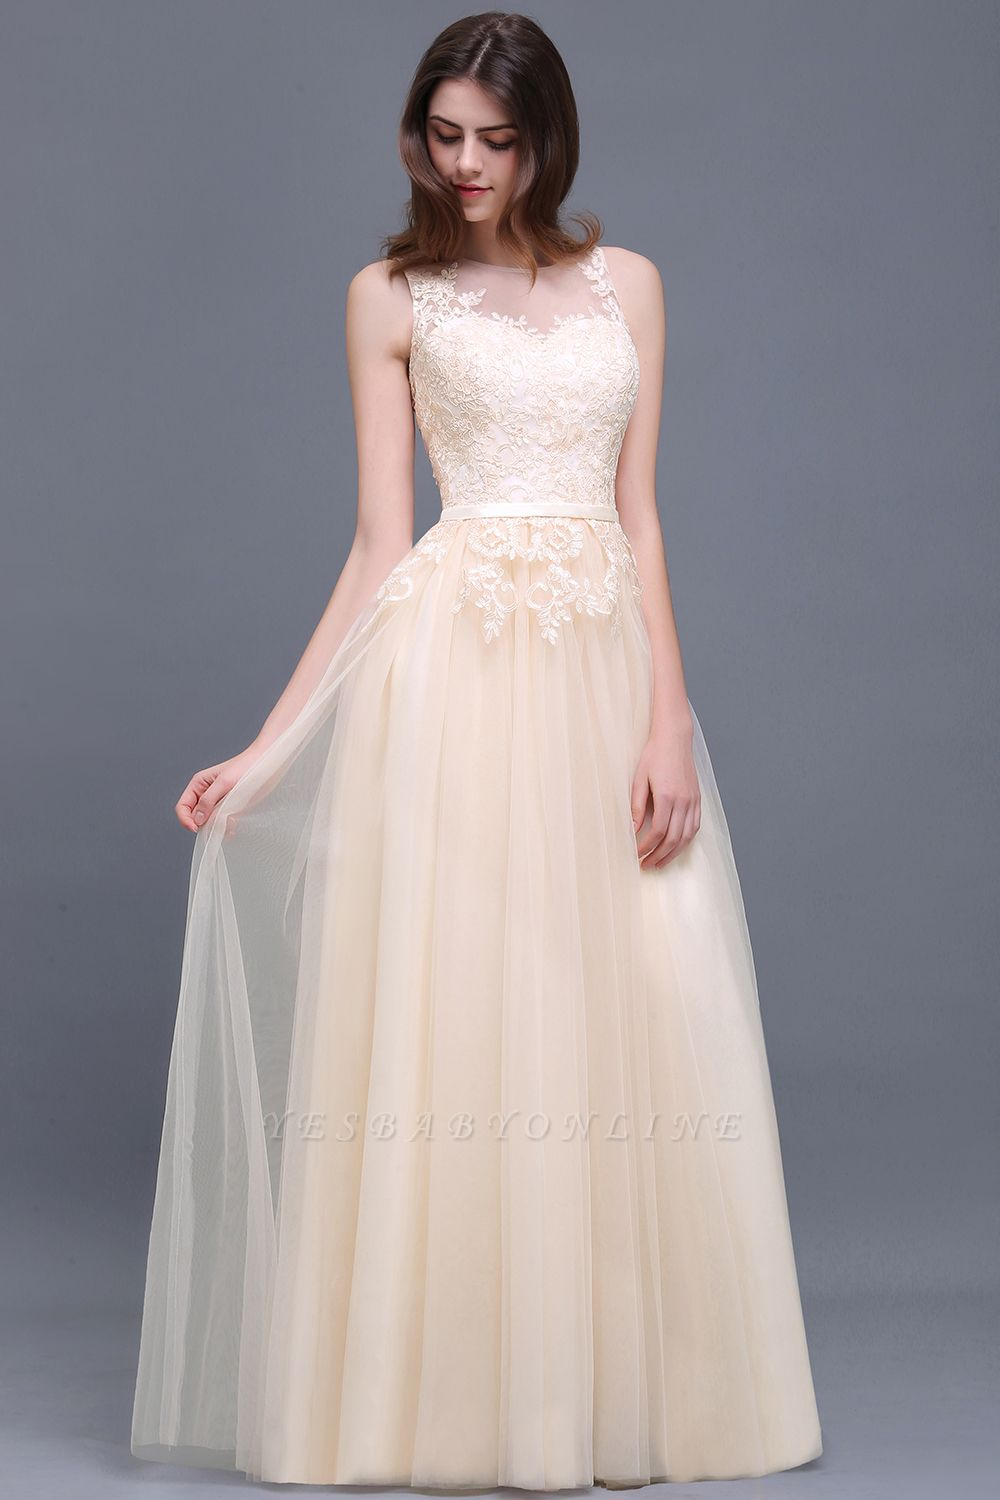 Lace Sleeveless Long Tulle Prom Dress